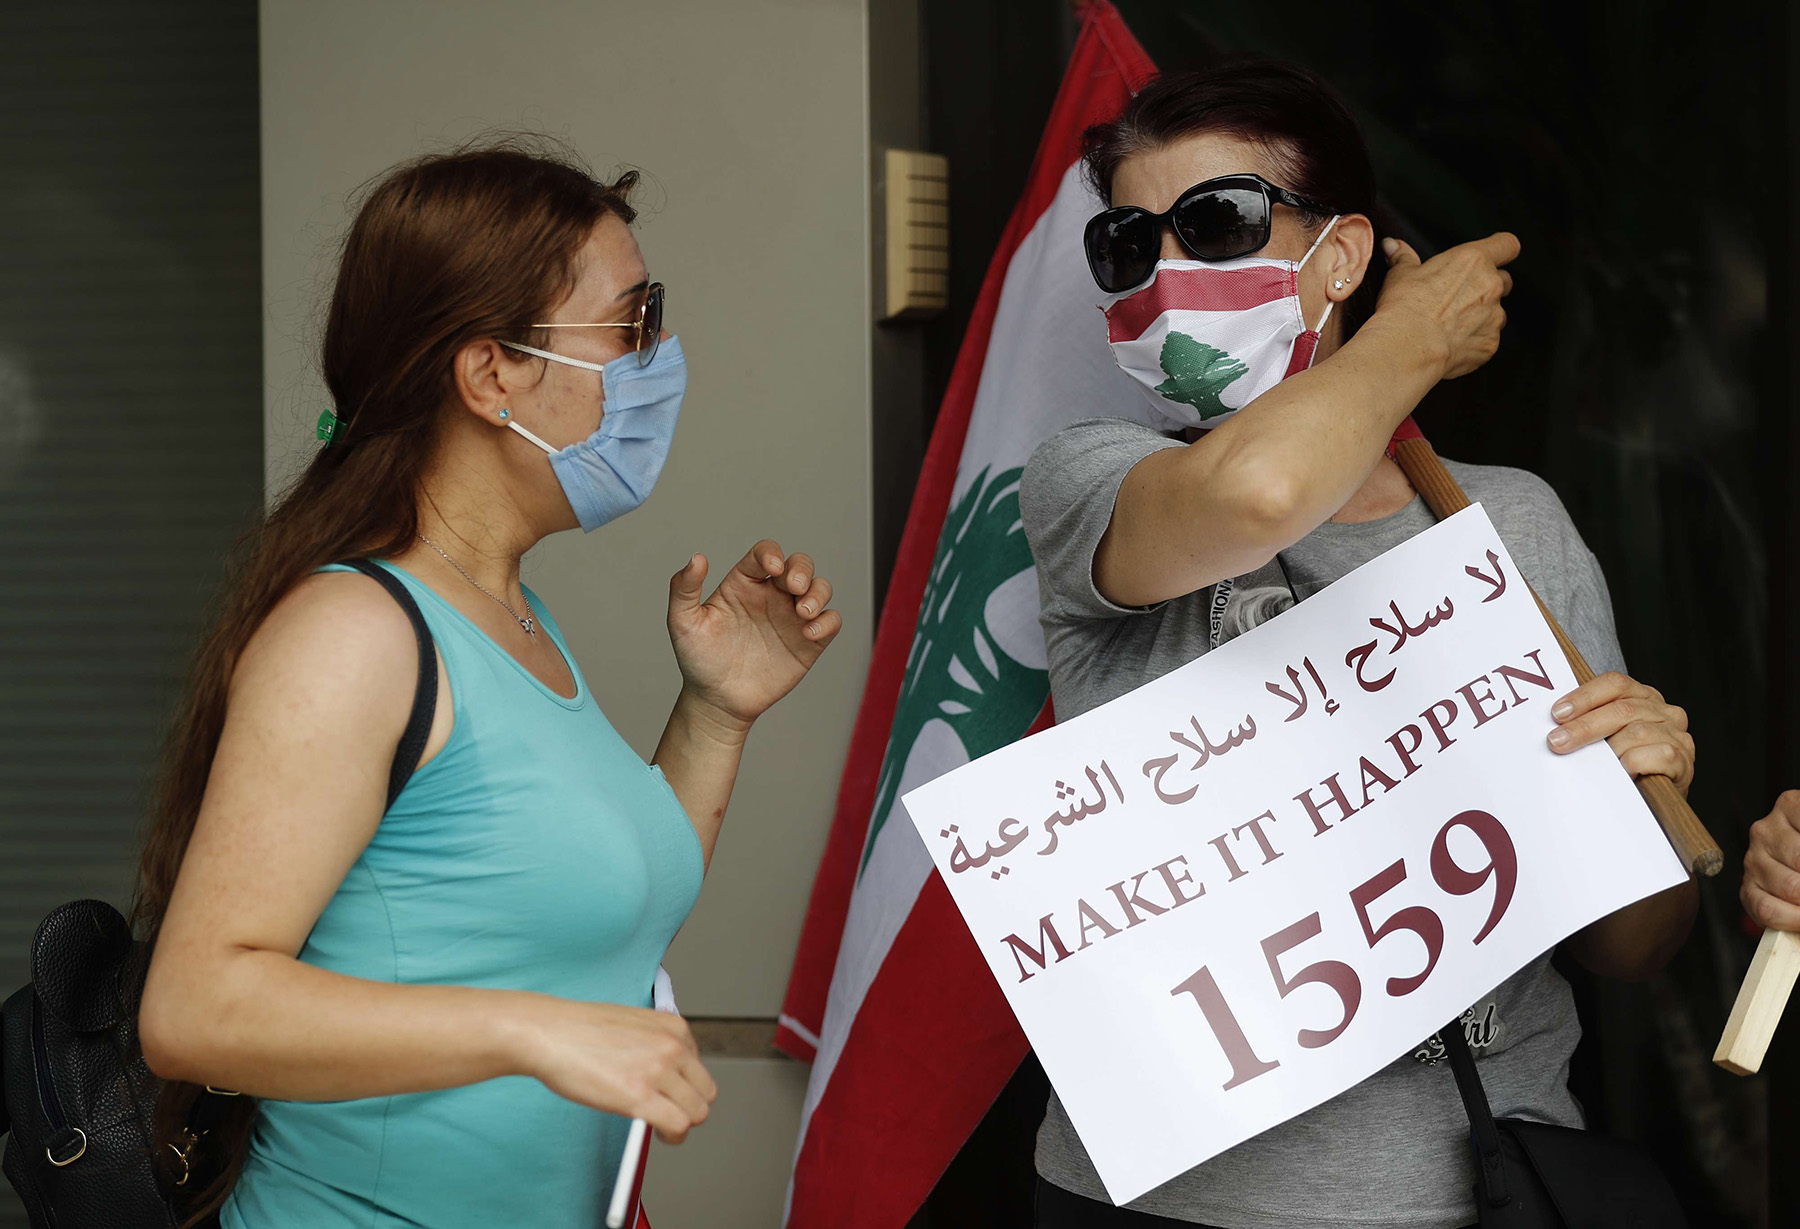 A Lebanese protester holds a placard endorsing UN Resolution 1559, which calls for the disarmament of all Lebanese and non-Lebanese militias, during a sit-in against Hezbollah and Iran, July 14, in Beirut. (AFP)